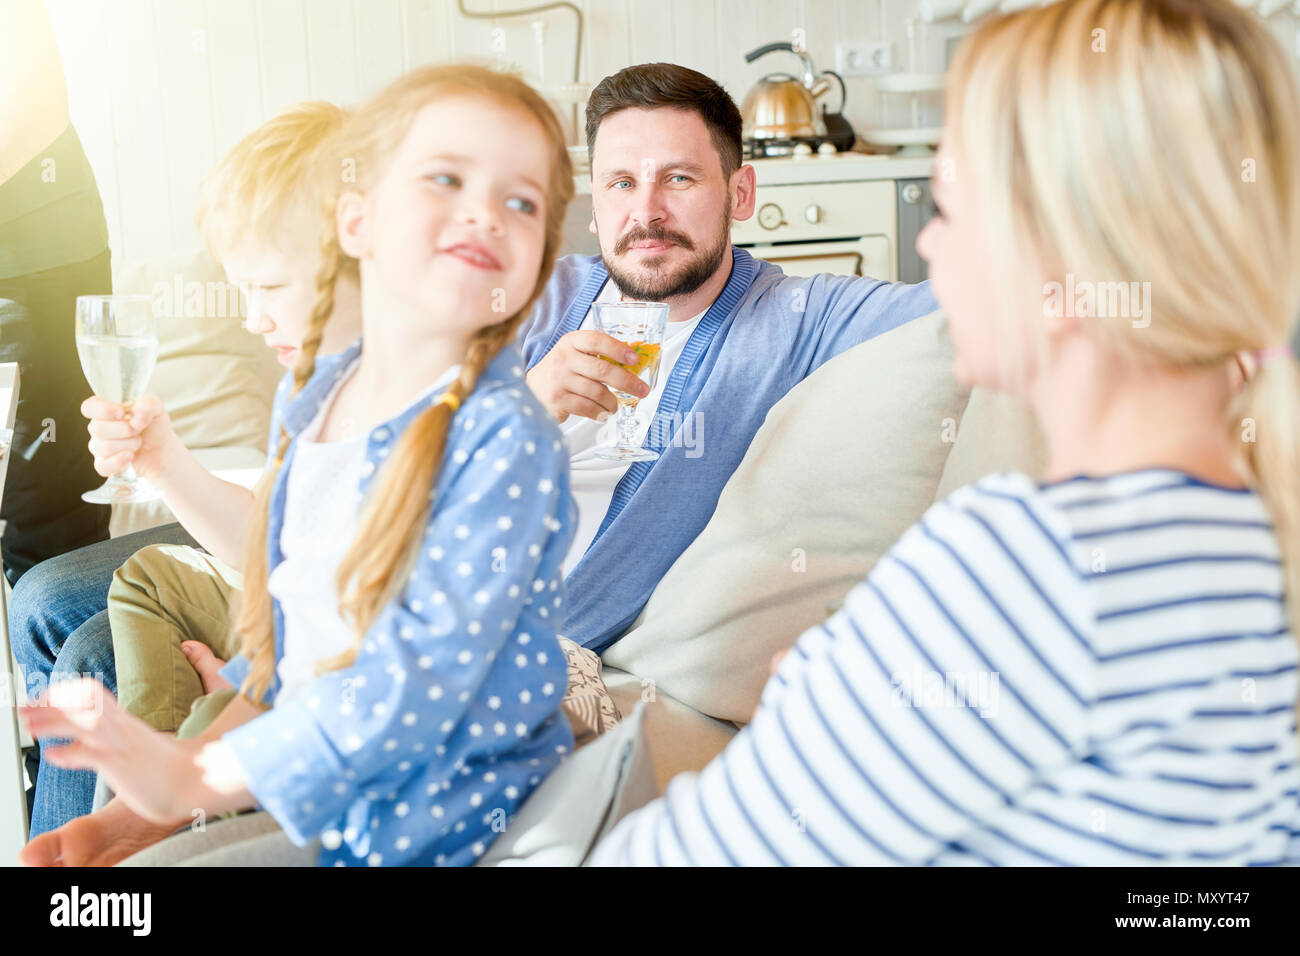 Portrait of happy family with two kids sitting on couch enjoying festive dinner party at home, focus on cute red haired girl turning to look at her mo - Stock Image